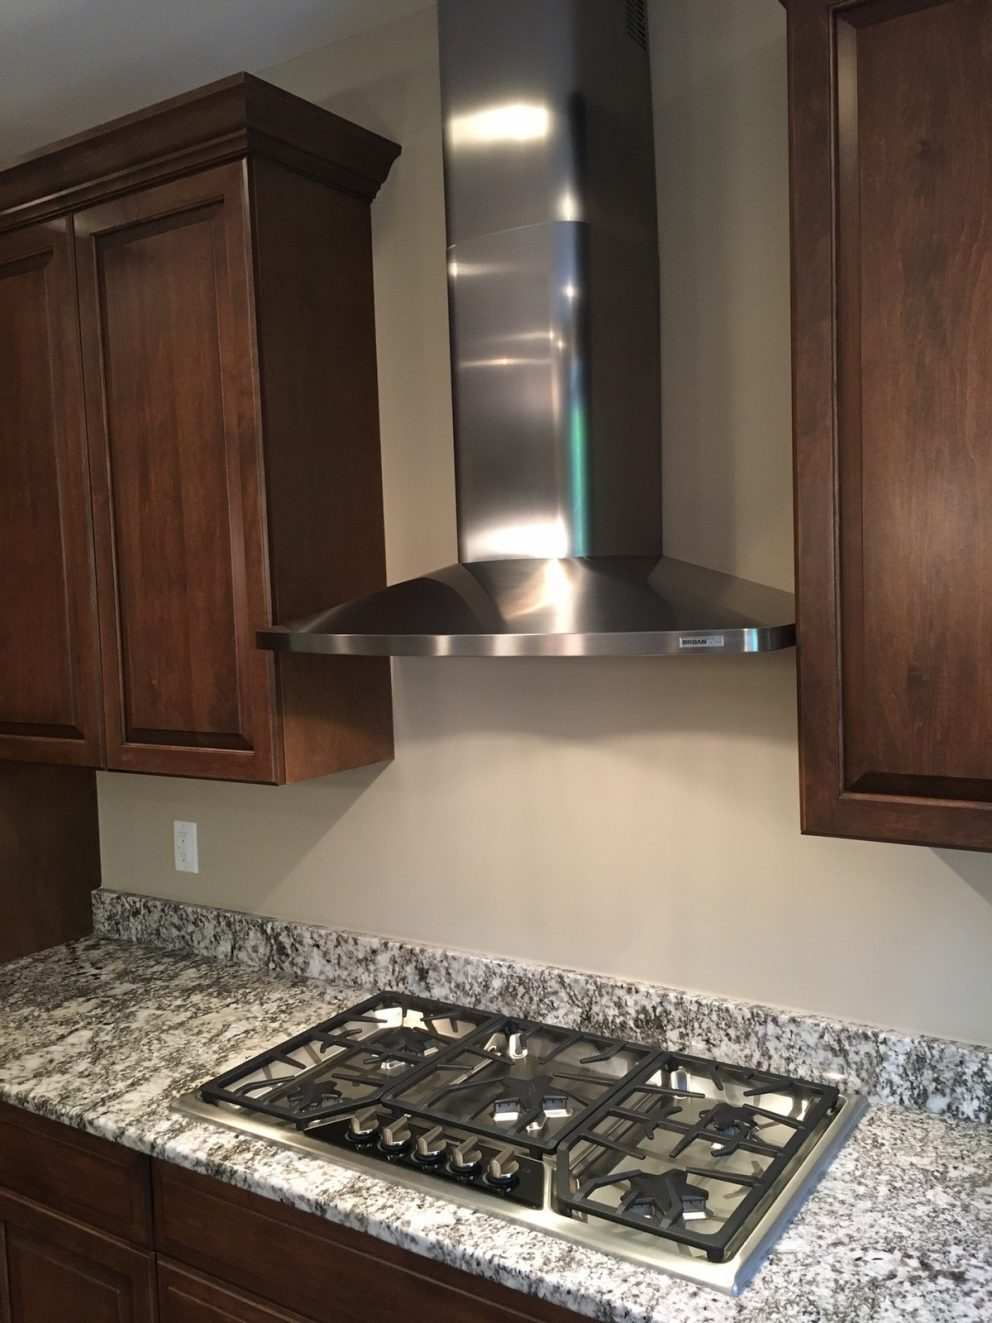 Gas cook top in granite counter top with stainless steel hood vent